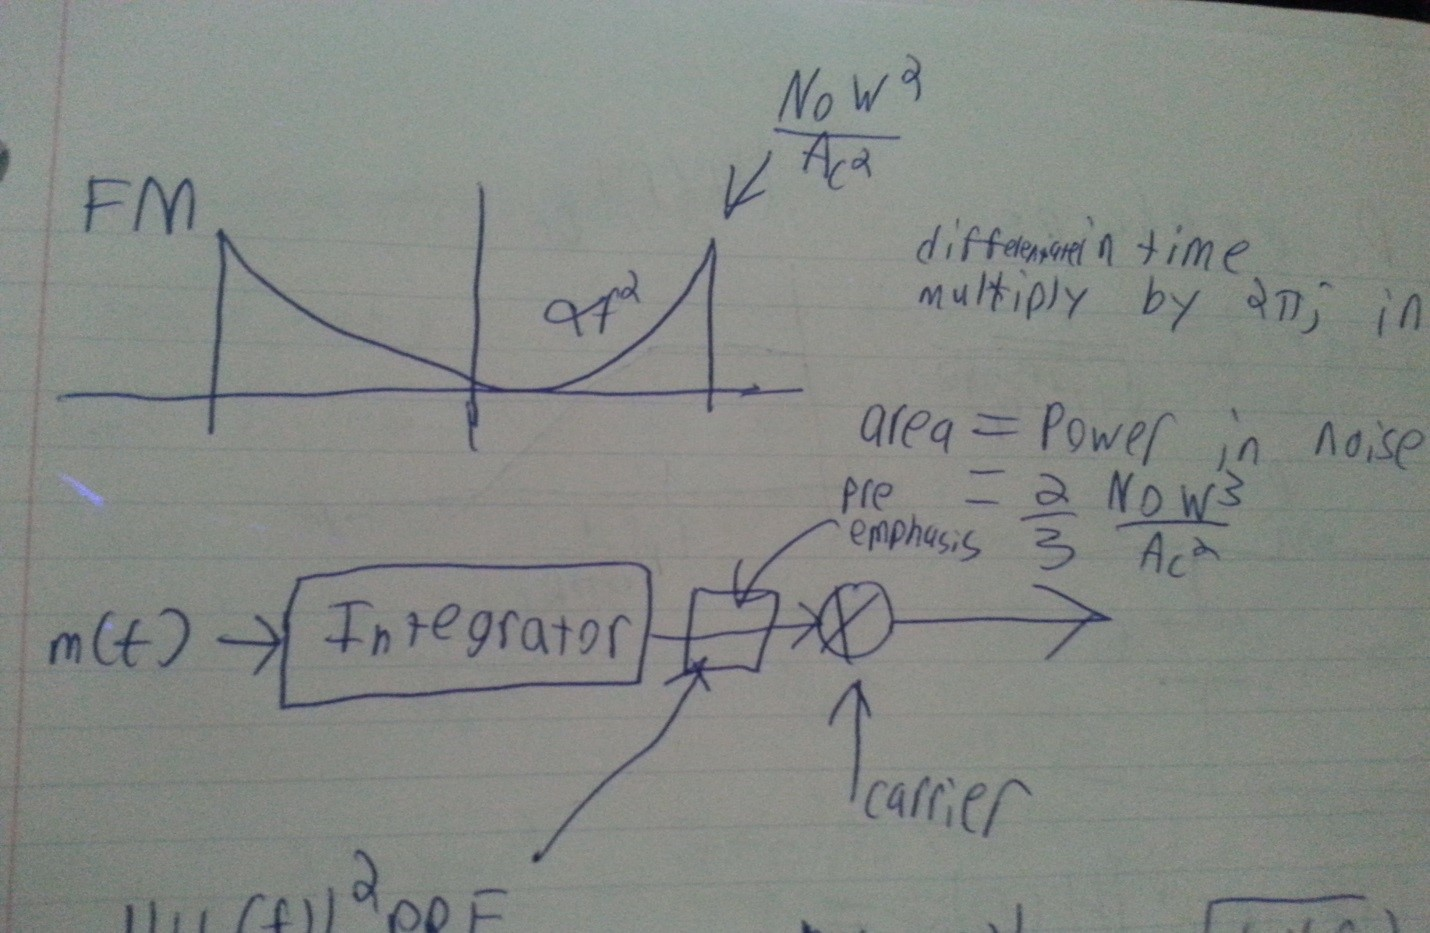 Edge Circuit Diagram For Dc Motor Control By A Collins Flowchart Of Pre Emphasis